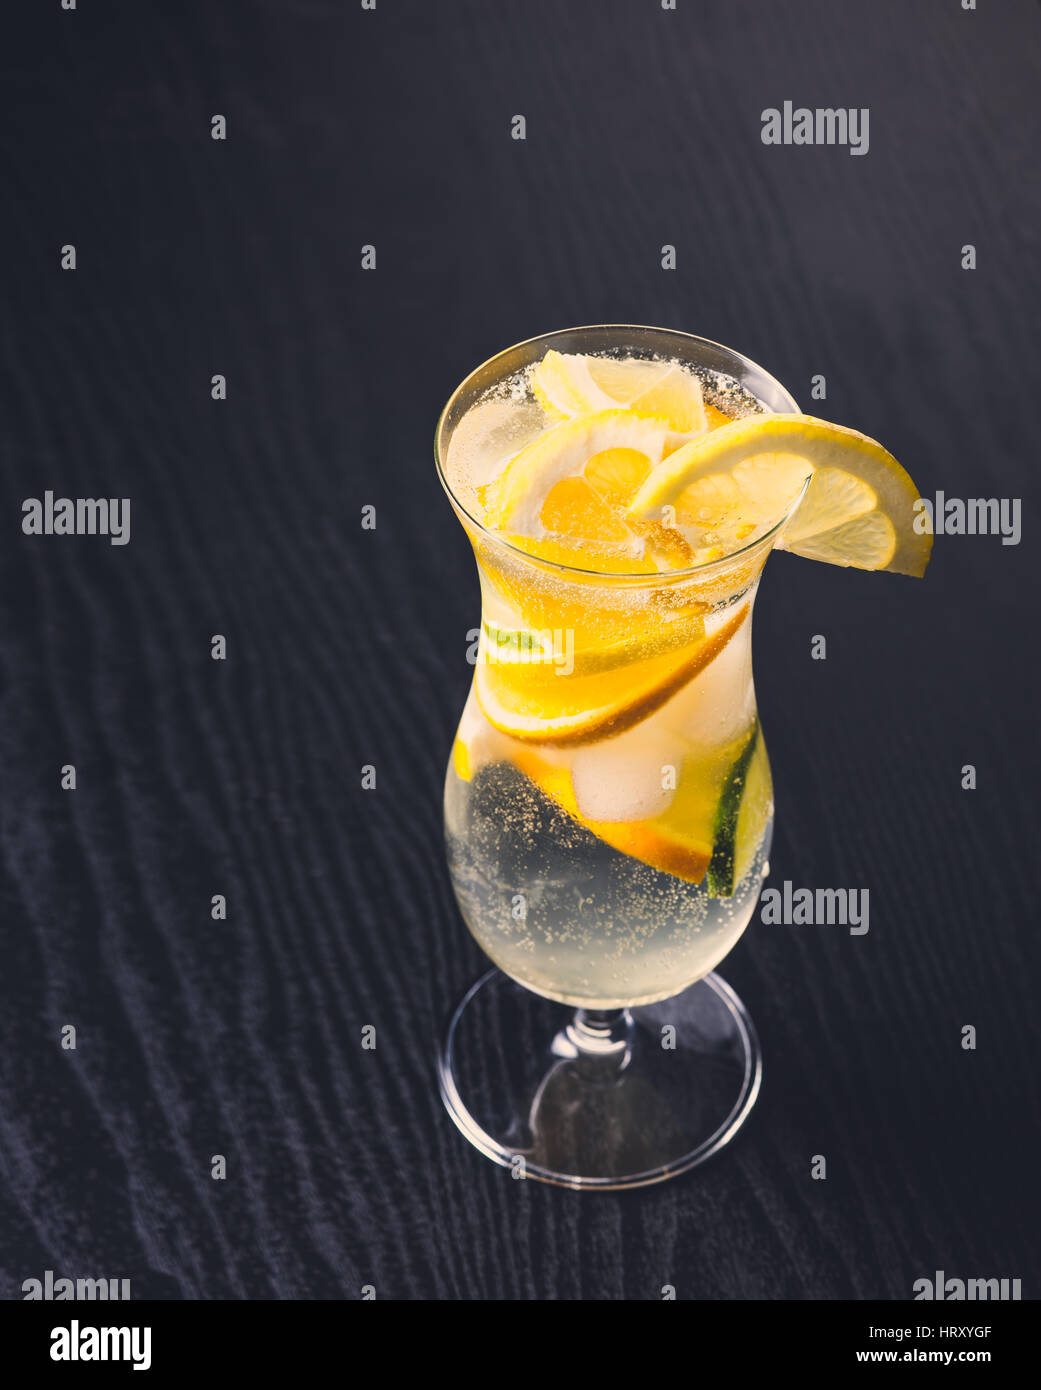 Fresh alcoholic drink with citrus fruits on dark wooden background - Stock Image